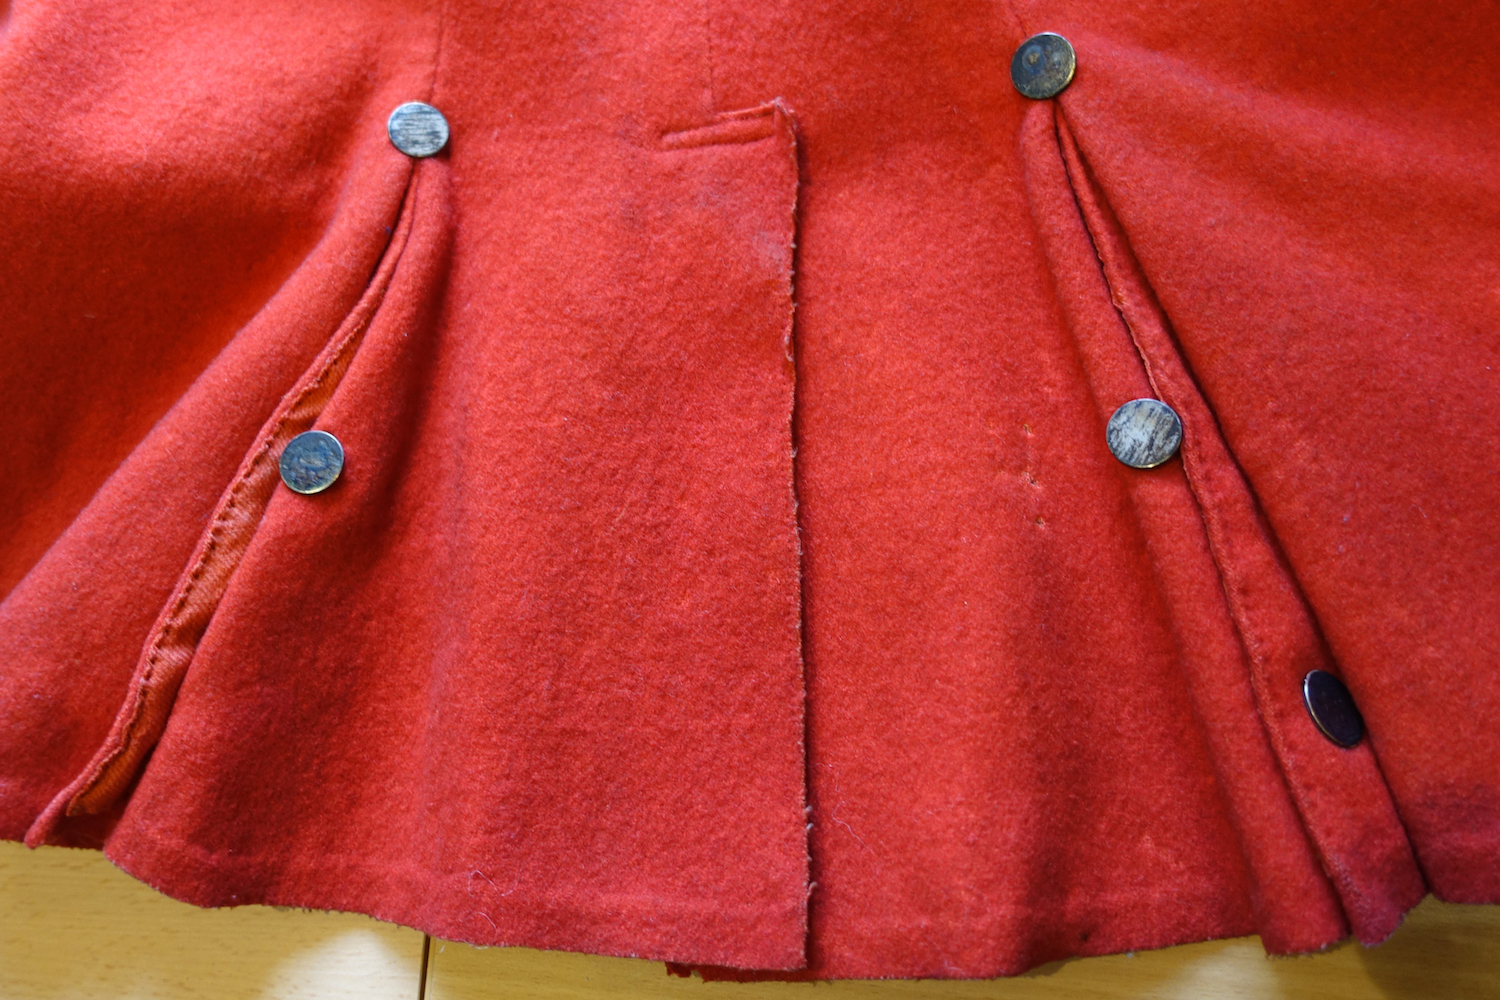 Close up of red riding coat